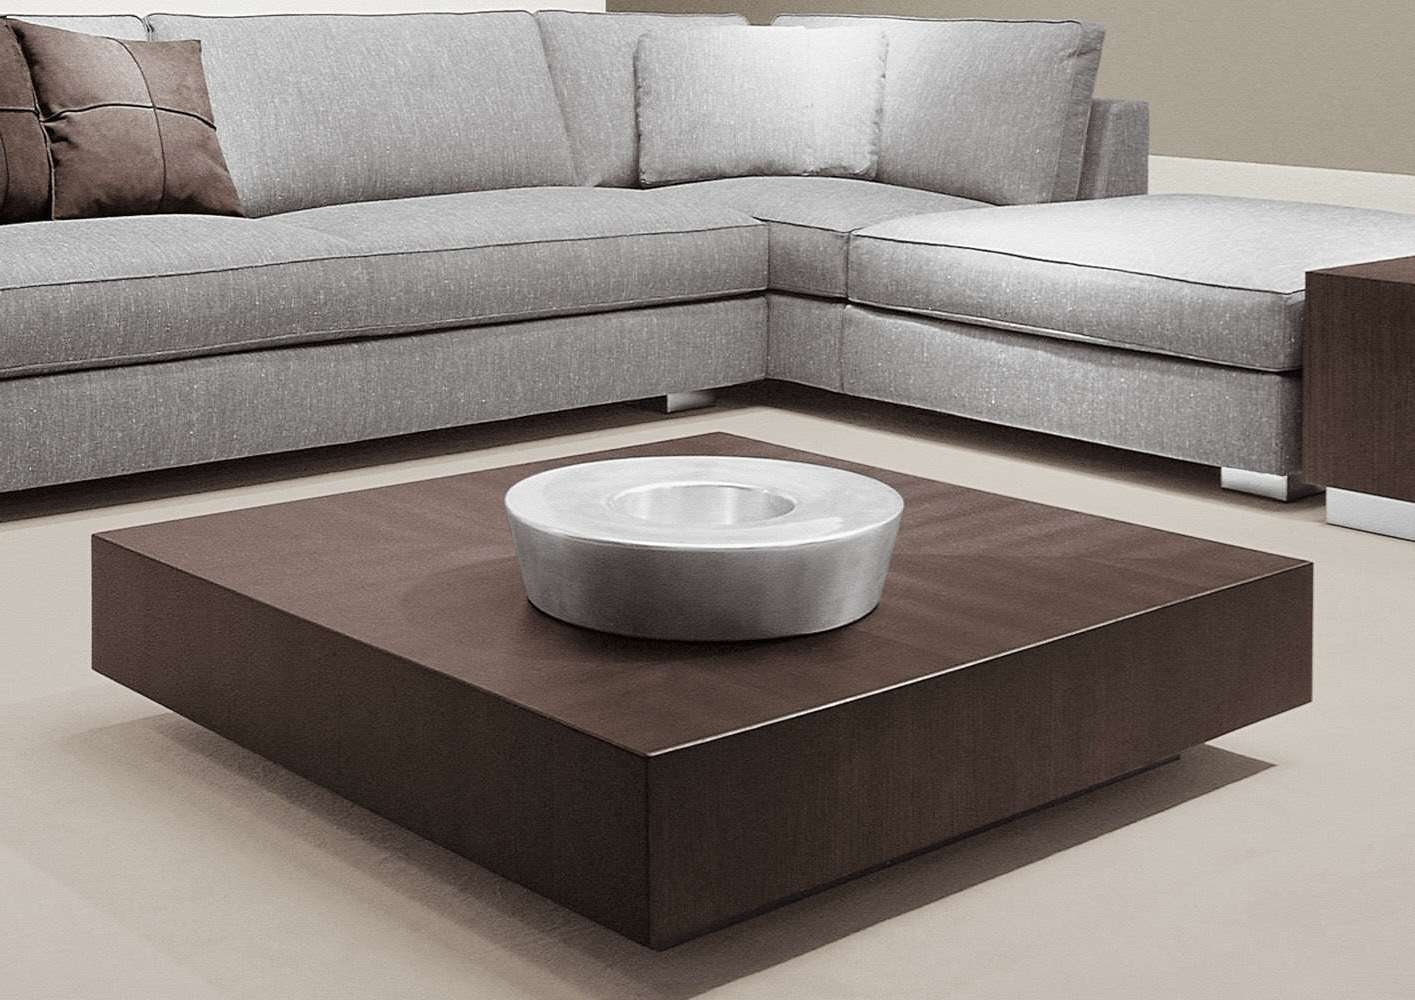 Fashionable Square Low Coffee Tables For Contemporary Coffee Table / Wooden / Steel / Square – Life (View 10 of 20)